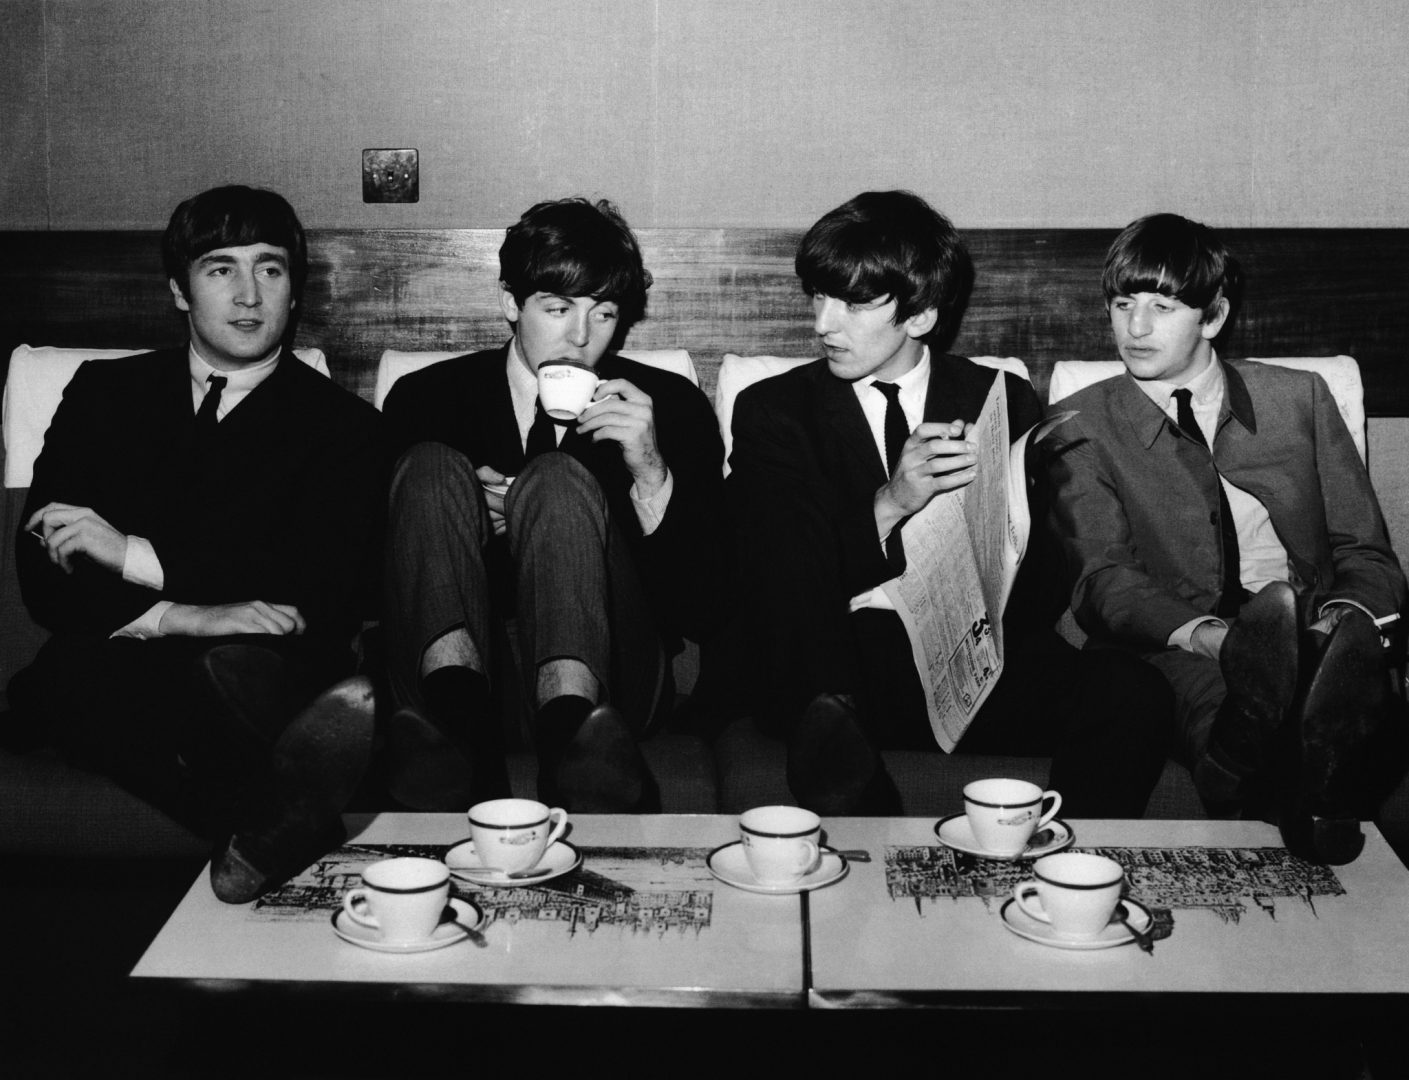 The Beatles have a coffee break